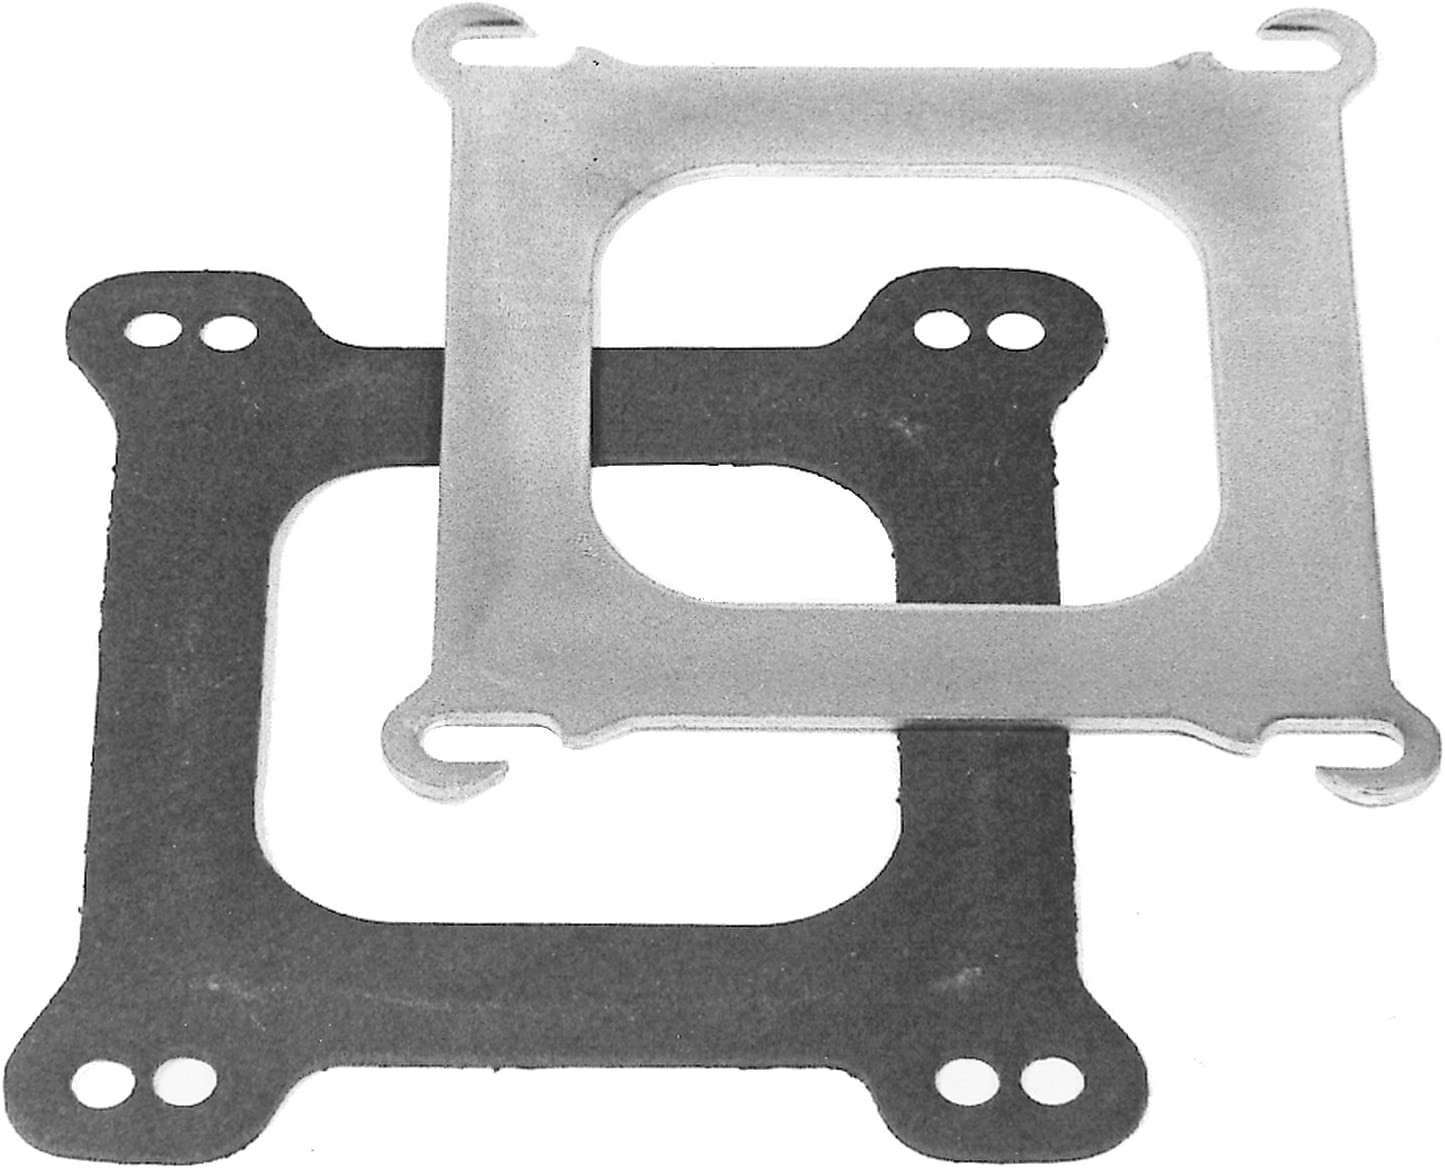 Edelbrock Carburetor Adapter Plate 2732;